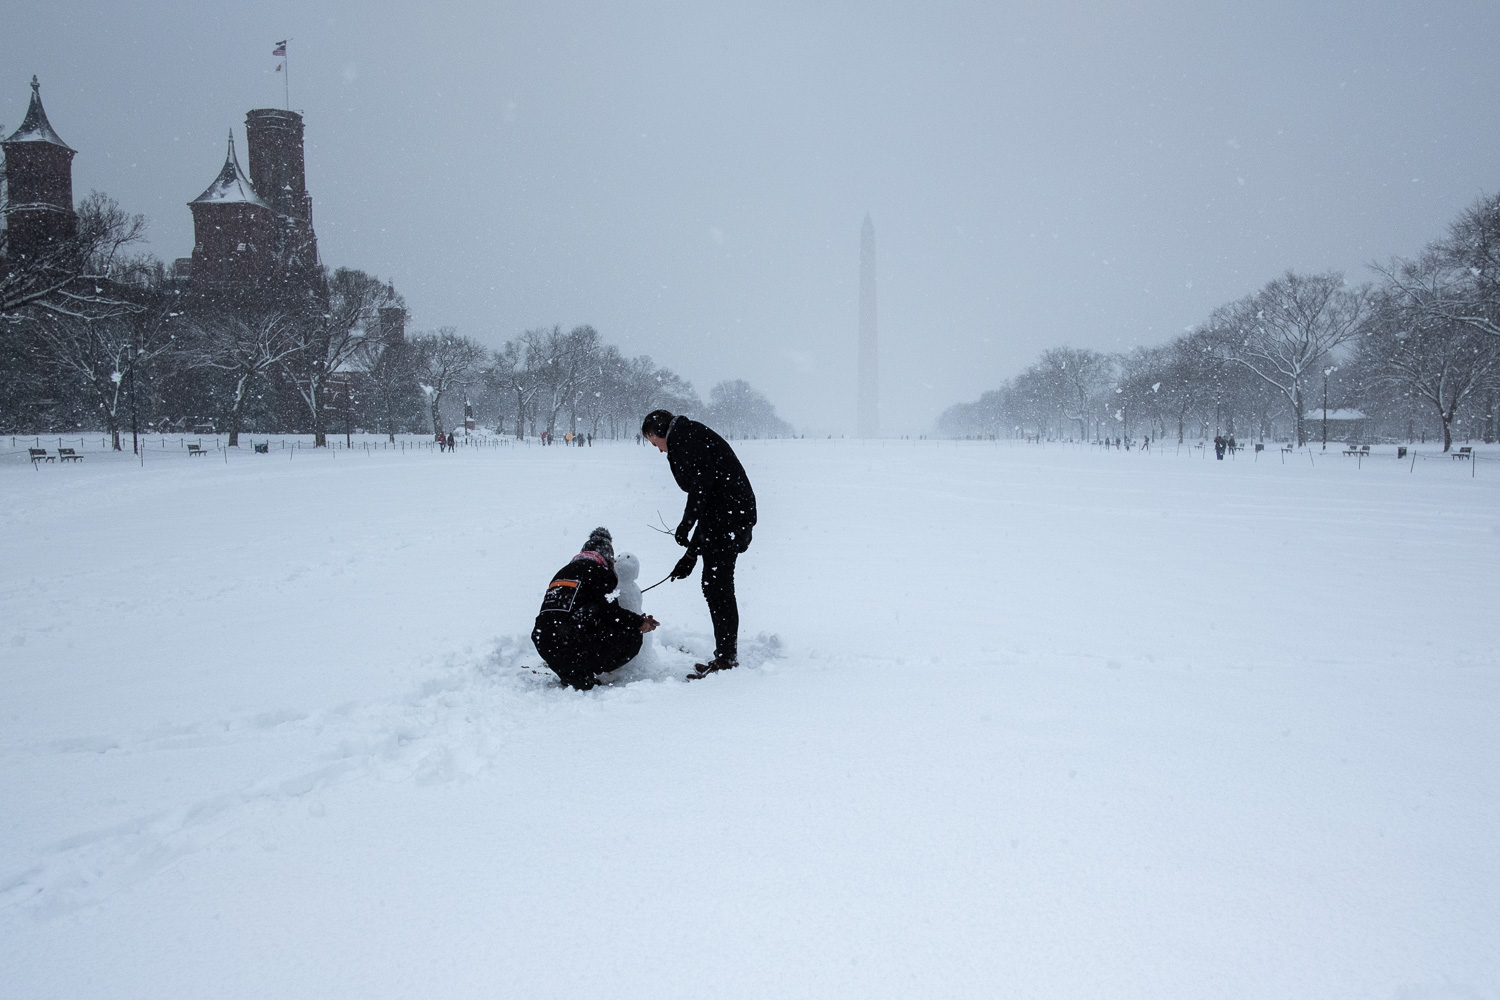 As the snow began to pick up in strength, I headed to the National Mall and found two people building a snowman. I like the simplicity of this shot, almost as if they are alone in America's backyard. Fujifilm X-Pro2, 18mm, 1/2500 @ f5.6, ISO 100.